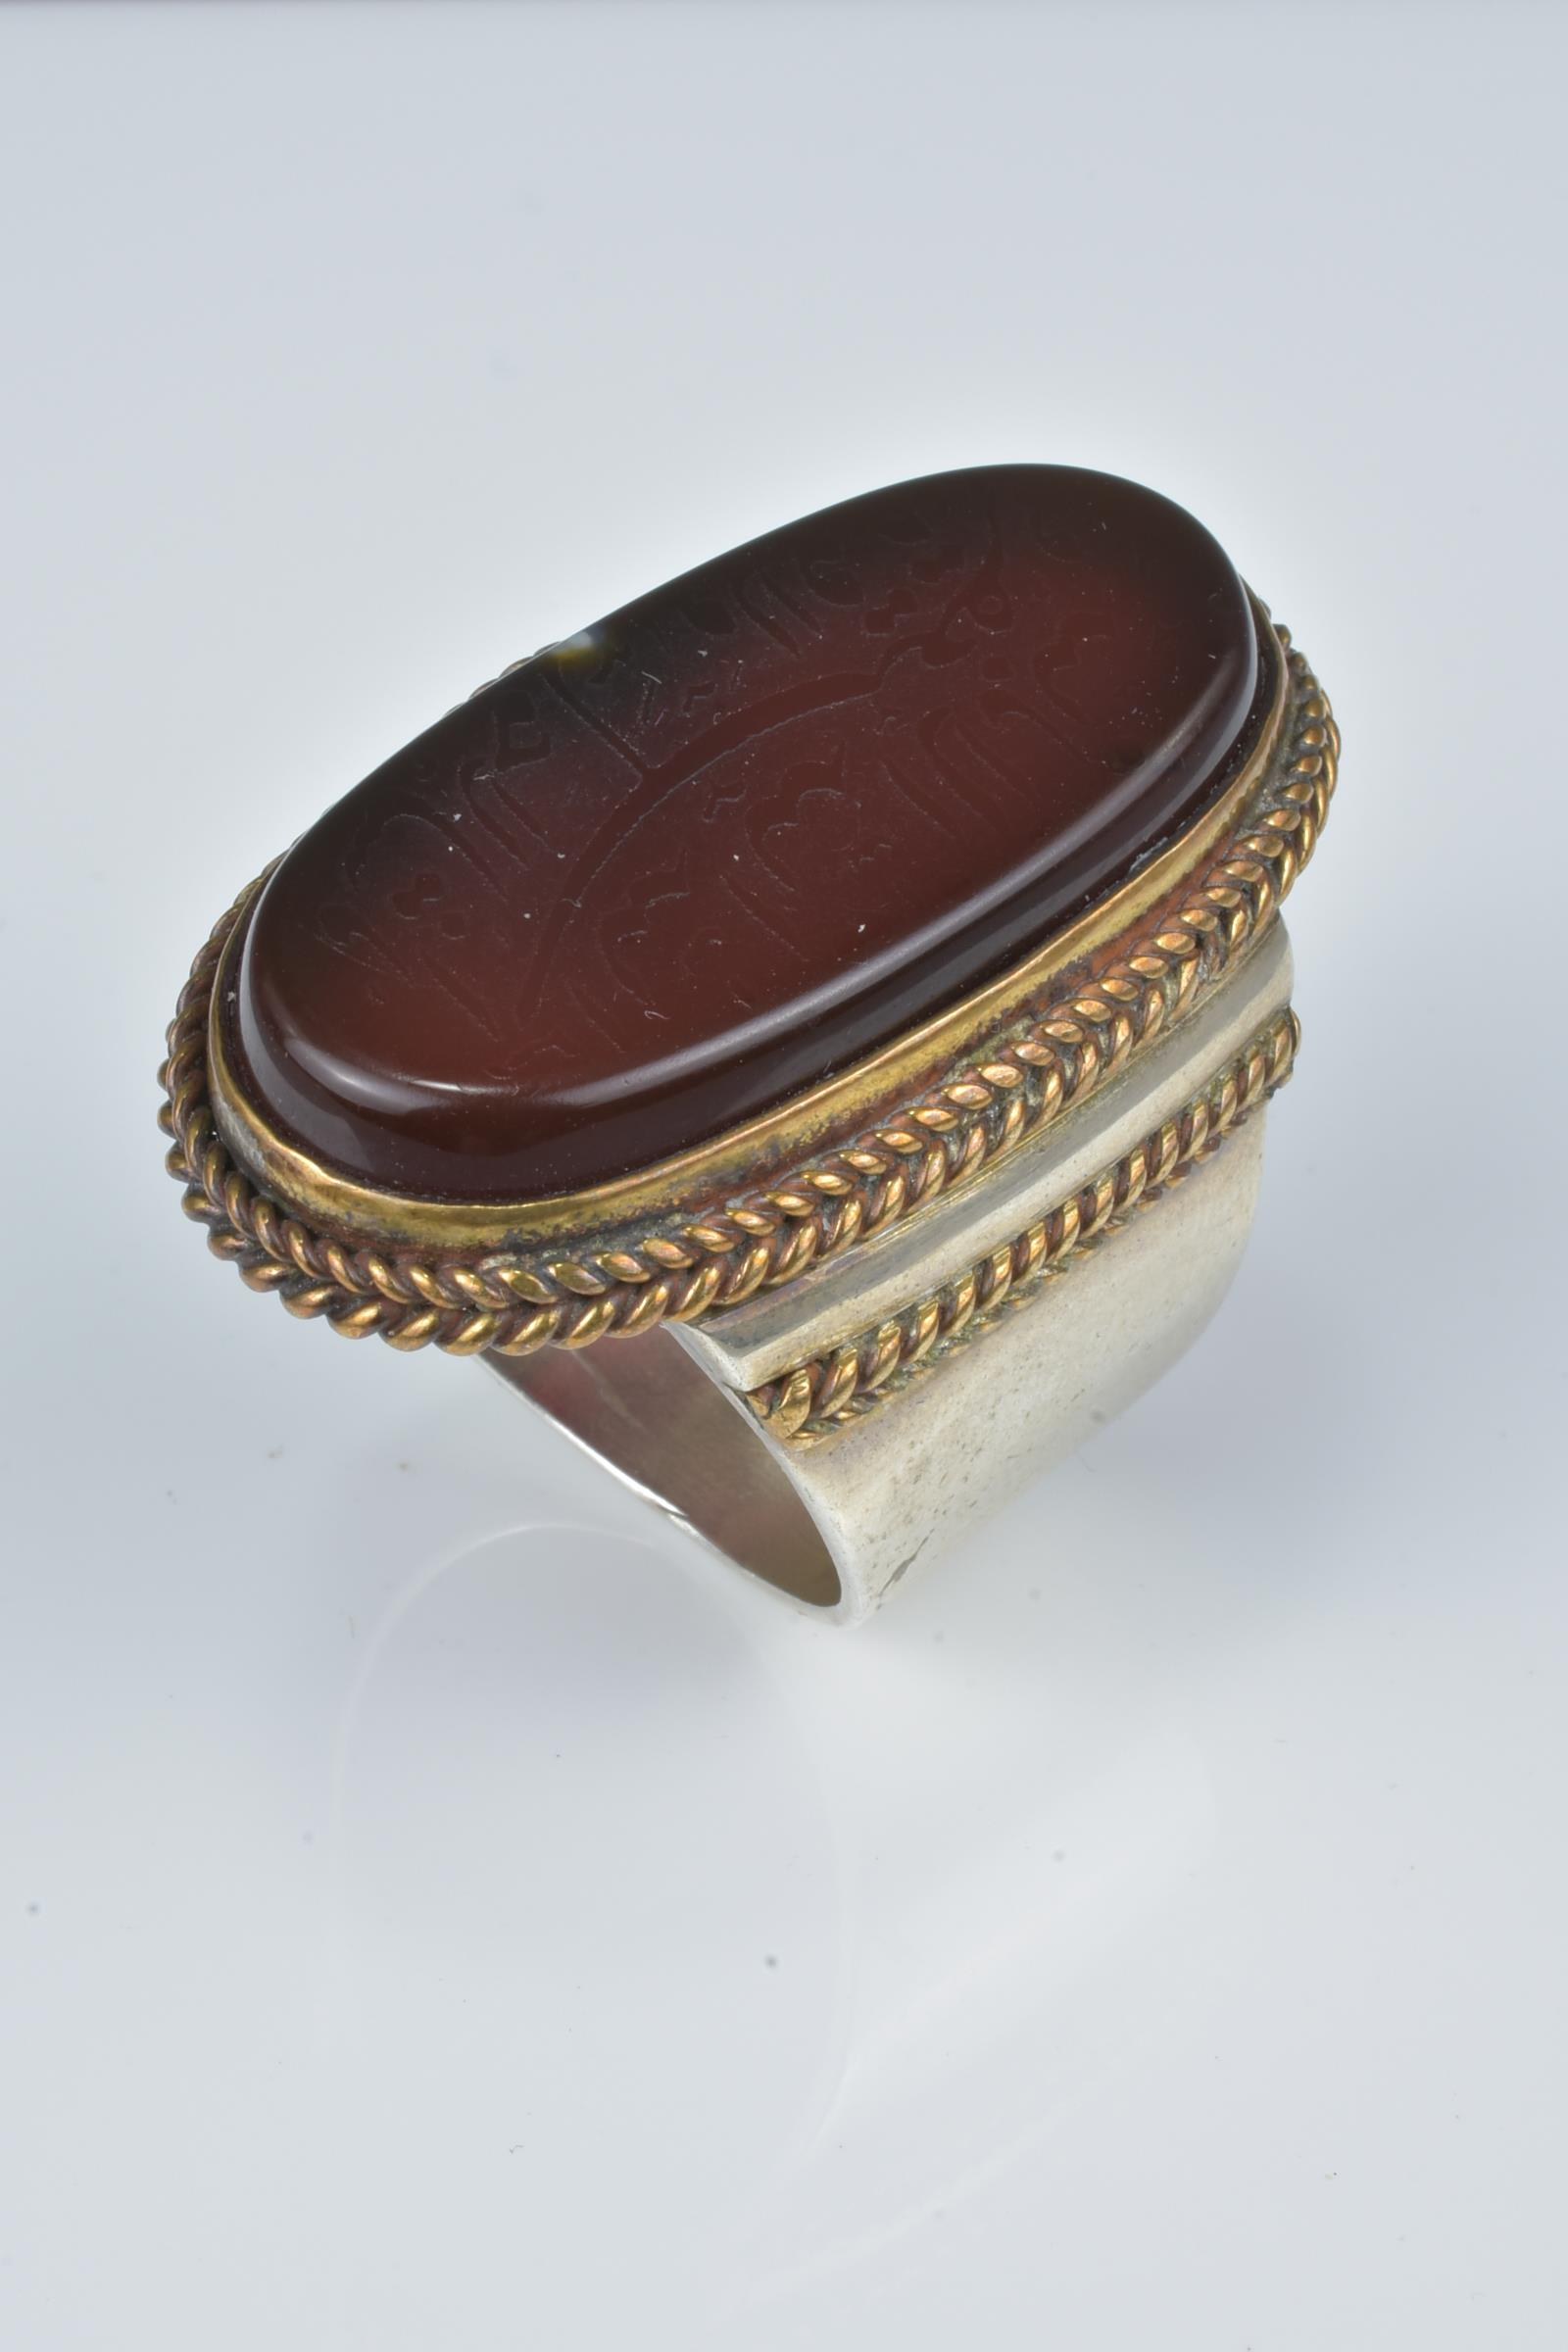 Lot 32 - An Islamic agate stone ring with inscription.